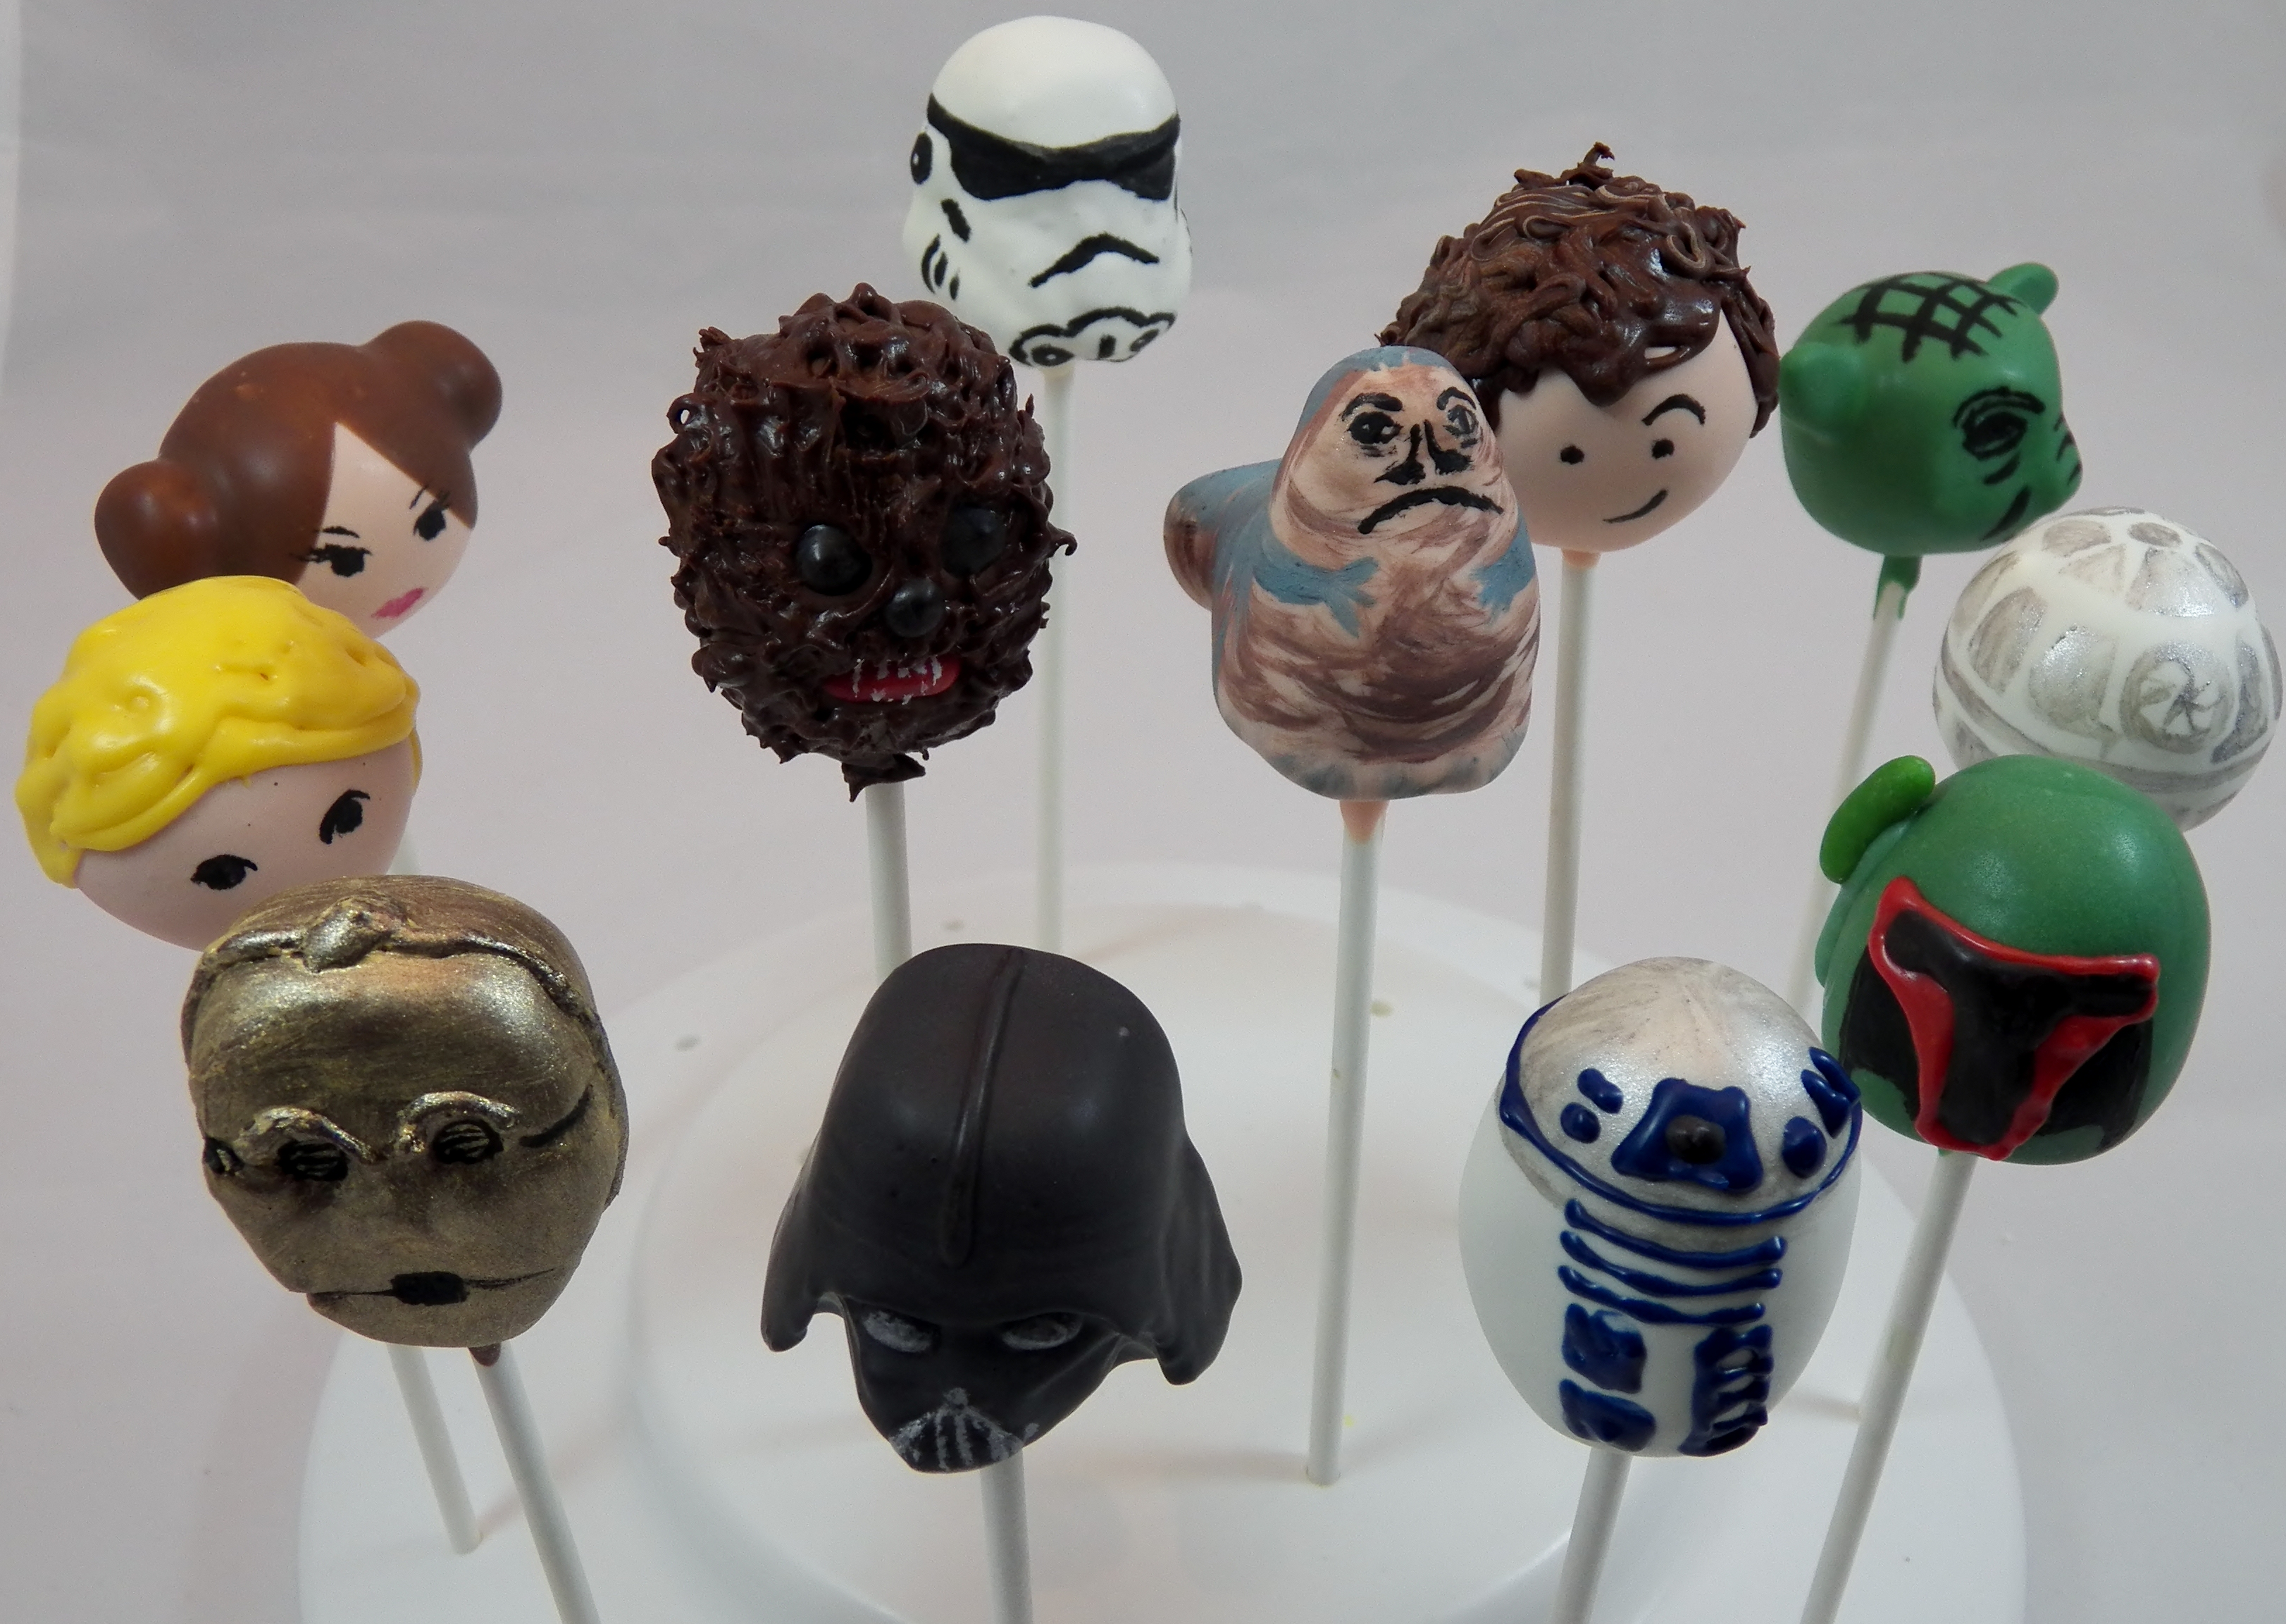 Star Wars Cake Pop Images : Star Wars Birthday Party in Chicago Chicago Cake Pops